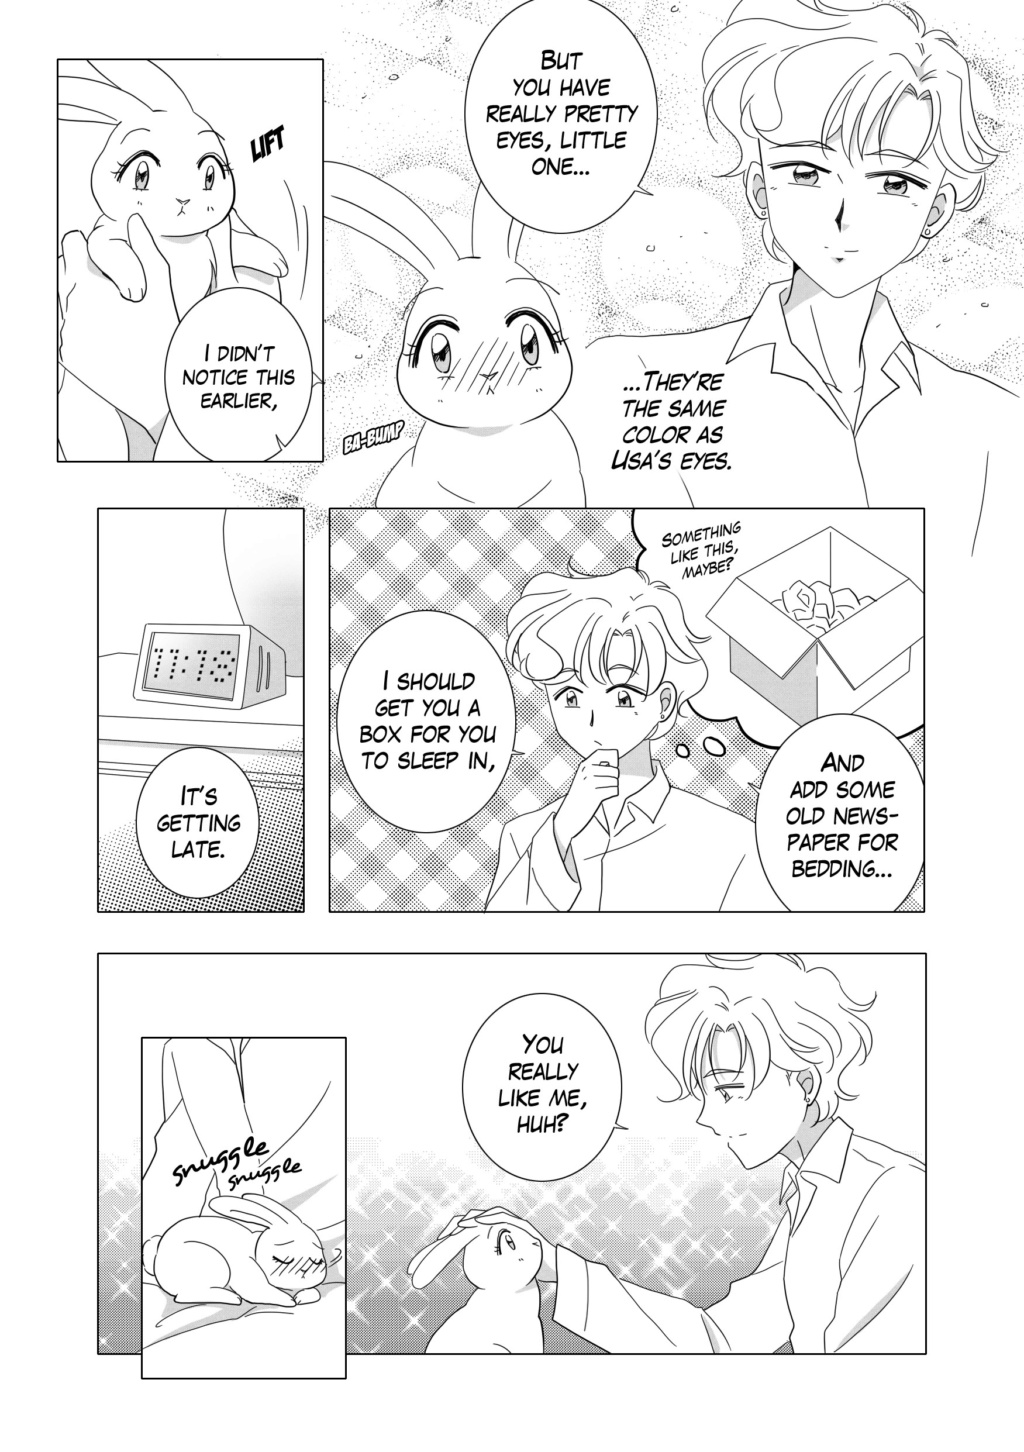 [F] My 30th century Chibi-Usa x Helios doujinshi project: UPDATED 11-25-18 - Page 19 Sbs_pg34